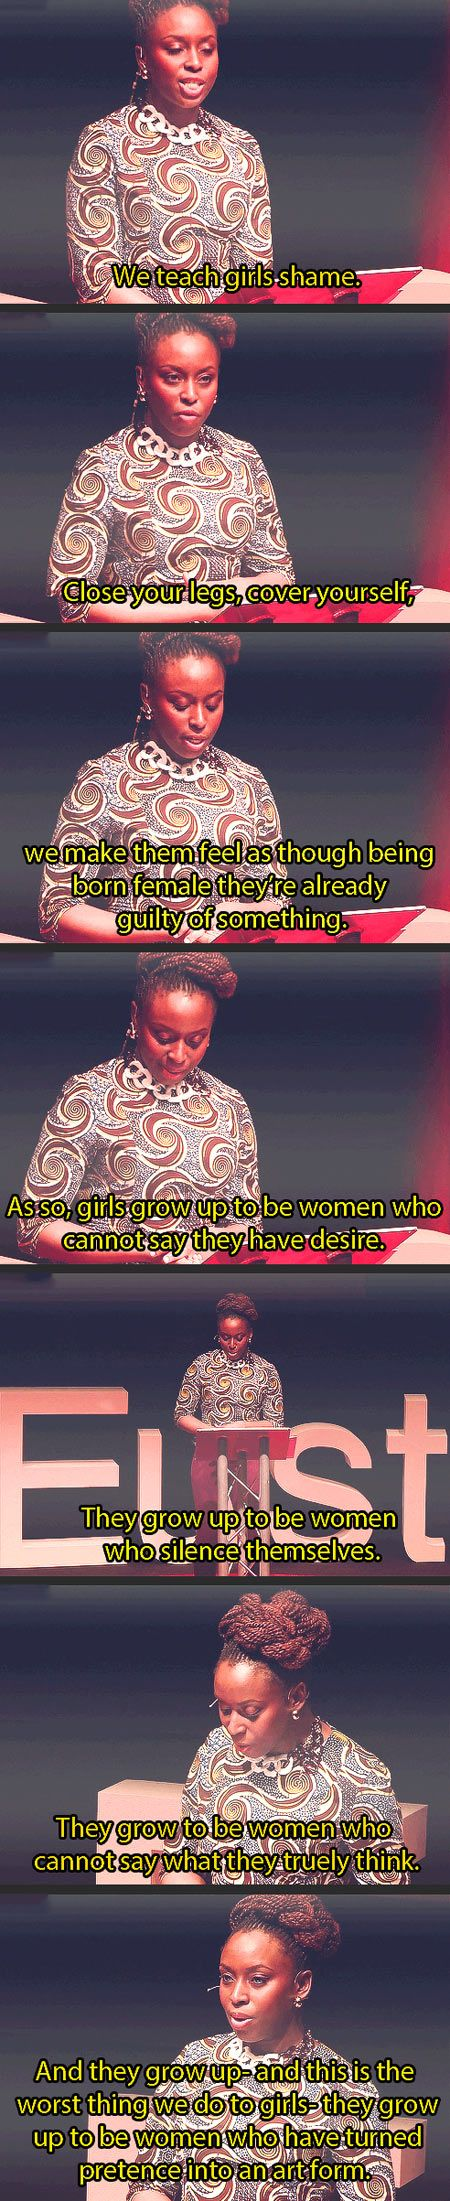 Well said by Chimamanda Ngozi Adichie, TedxEuston #quotes #feminism Let us not shame each other, but lift each other up.